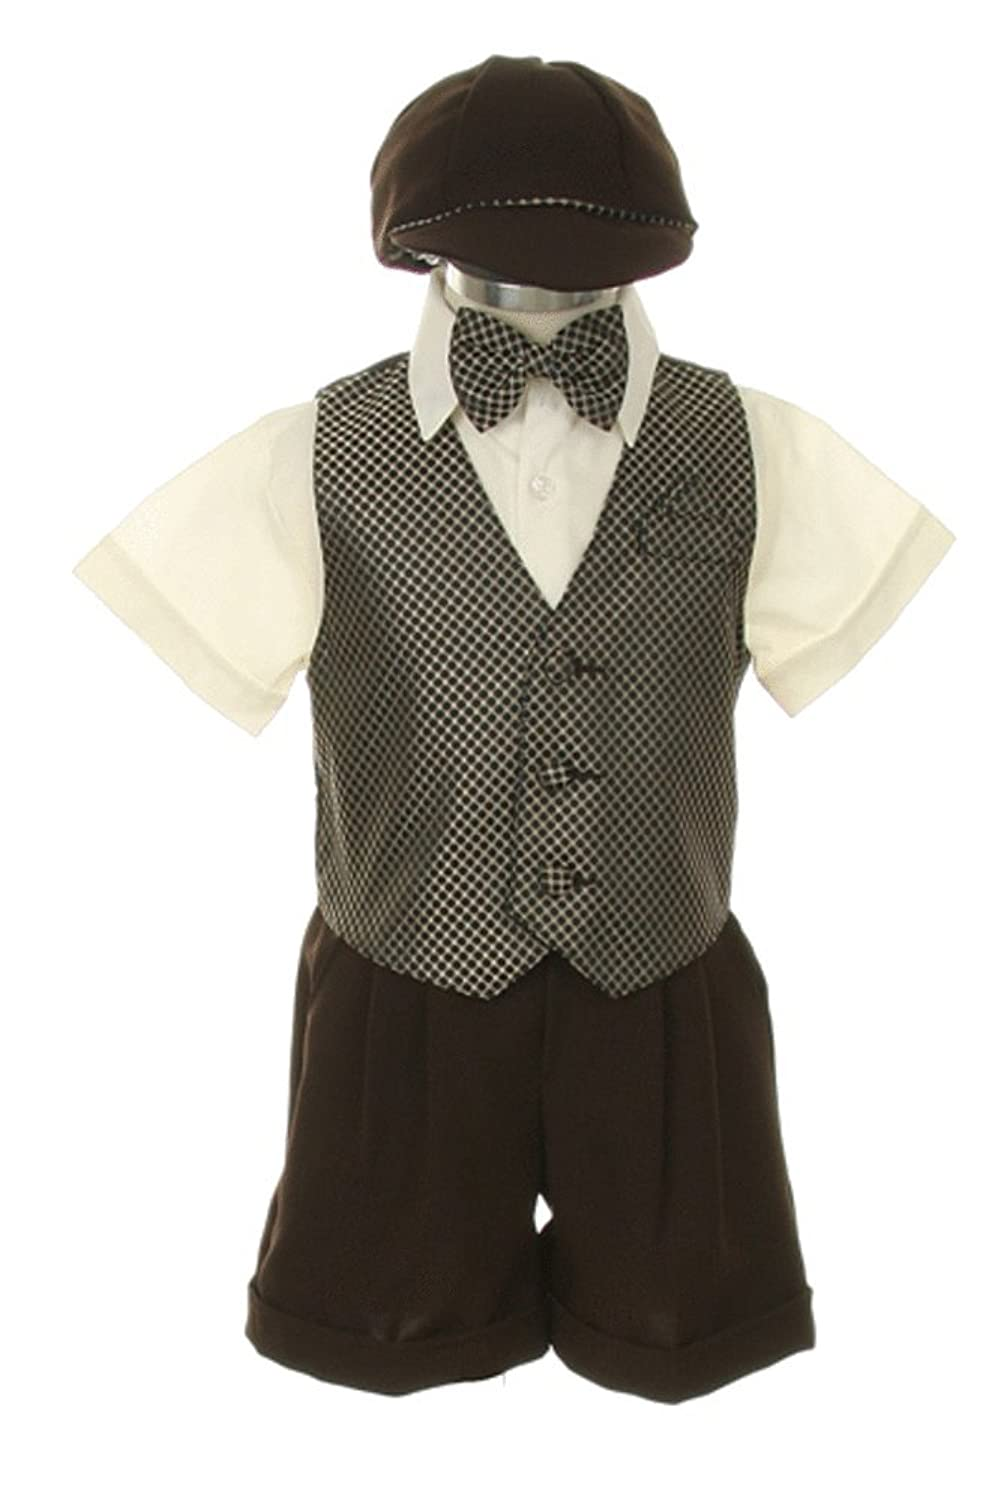 Amazon.com: Dress Suit Outfit Set-Shorts, Bow-tie, Vest, Shirt ...